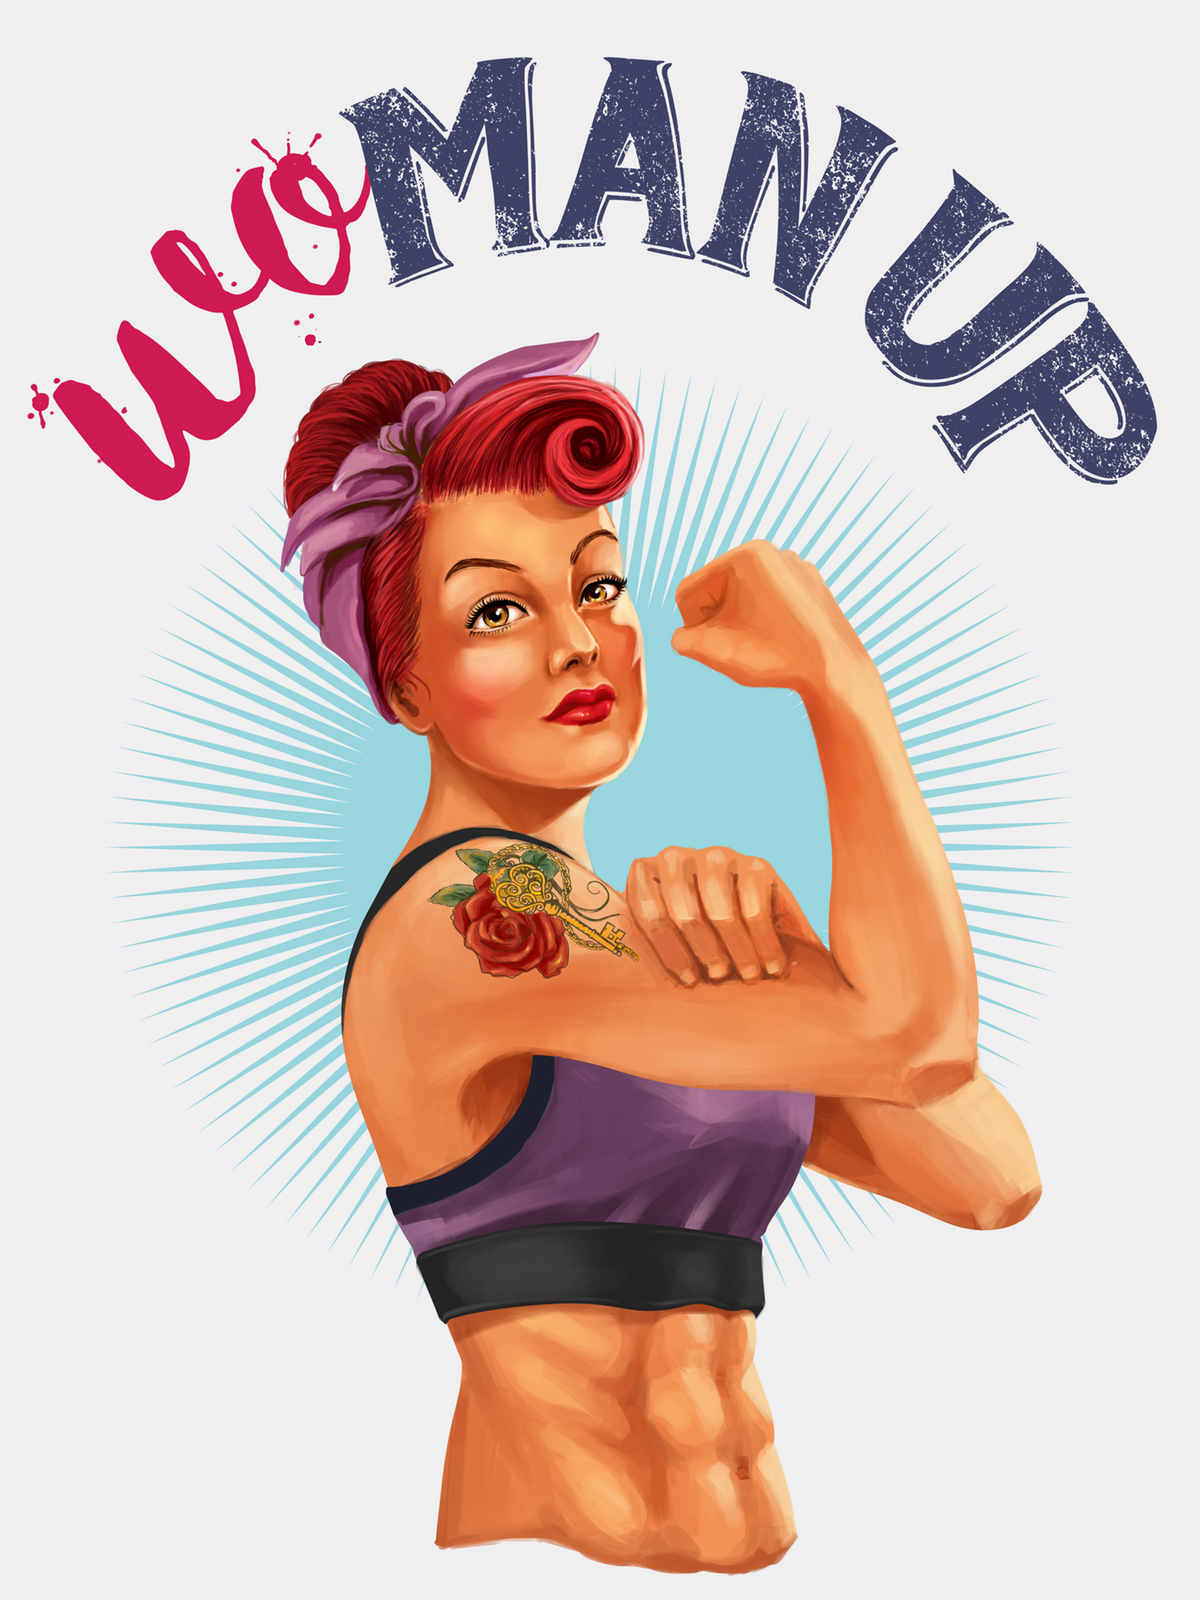 'Wo-Man Up!' Design for a technical running top in the style of a fashion tee.